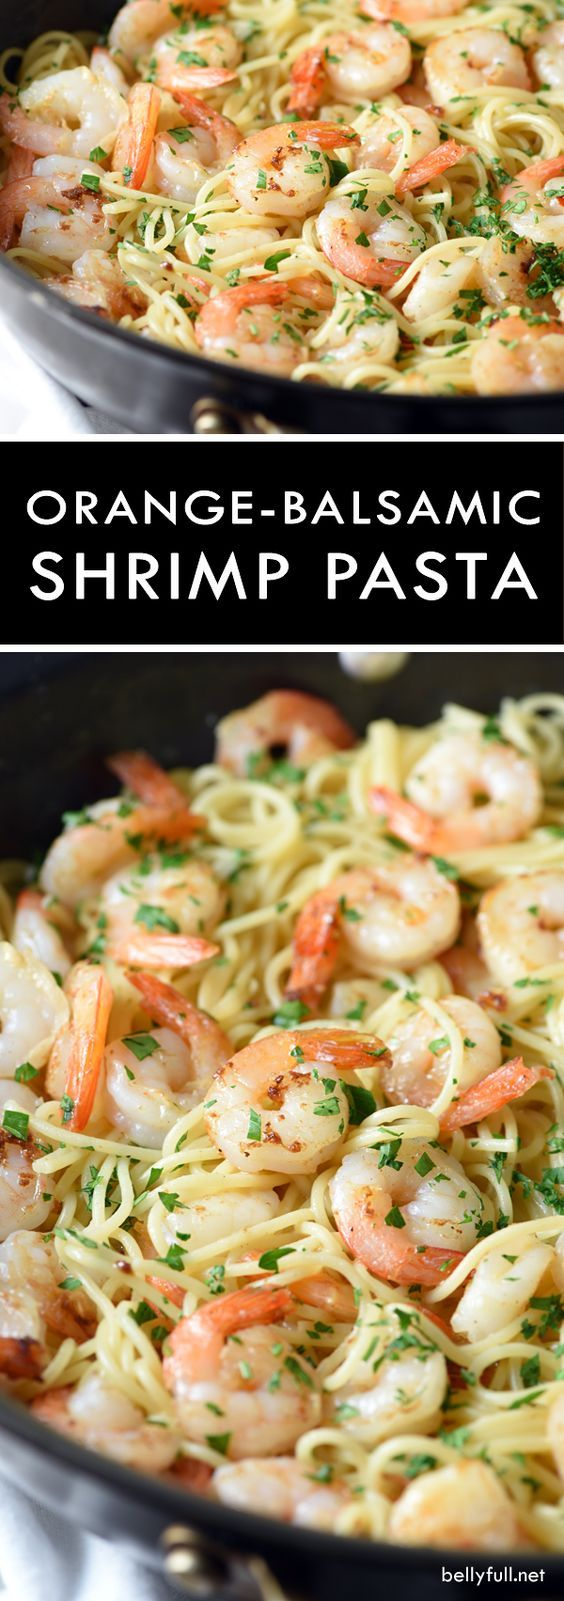 Orange-Balsamic Shrimp Pasta - sautéed shrimp are coated in a spicy and tangy citrus sauce that is out of this world!